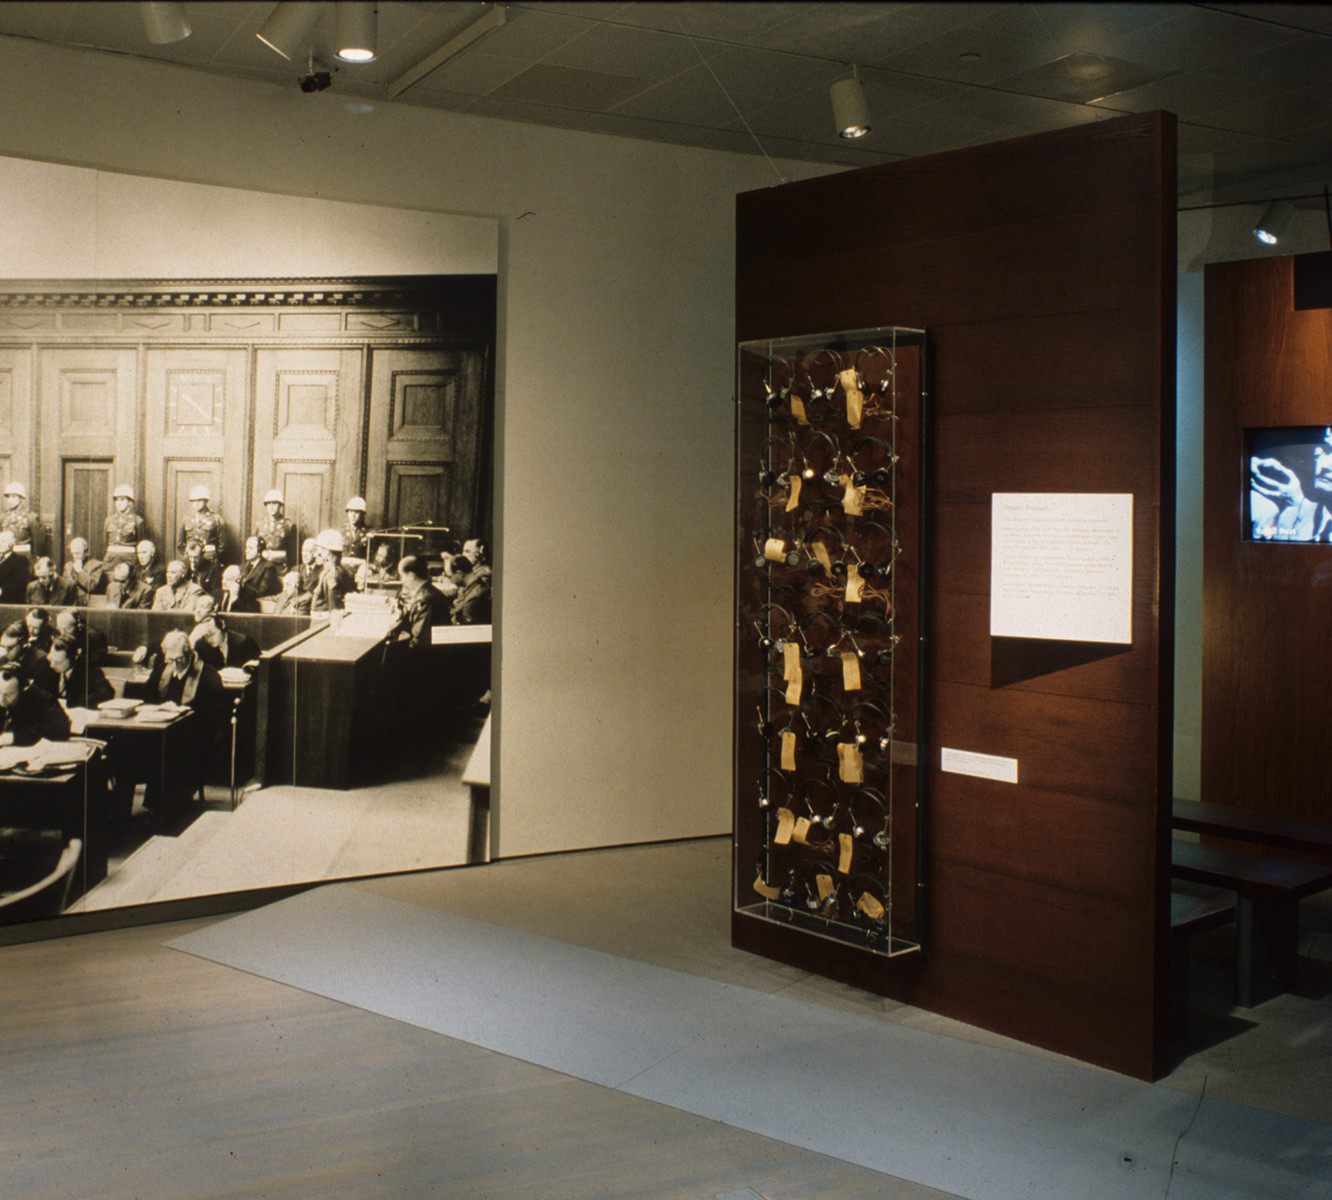 Installation photograph of the special exhibition, Liberation 1945.  This image shows the segments:  Pursuing the Killers, a view of theater, the perpetrator's head phones and a large mural photograph of the perpatrators in the courtroom at Nuremberg.